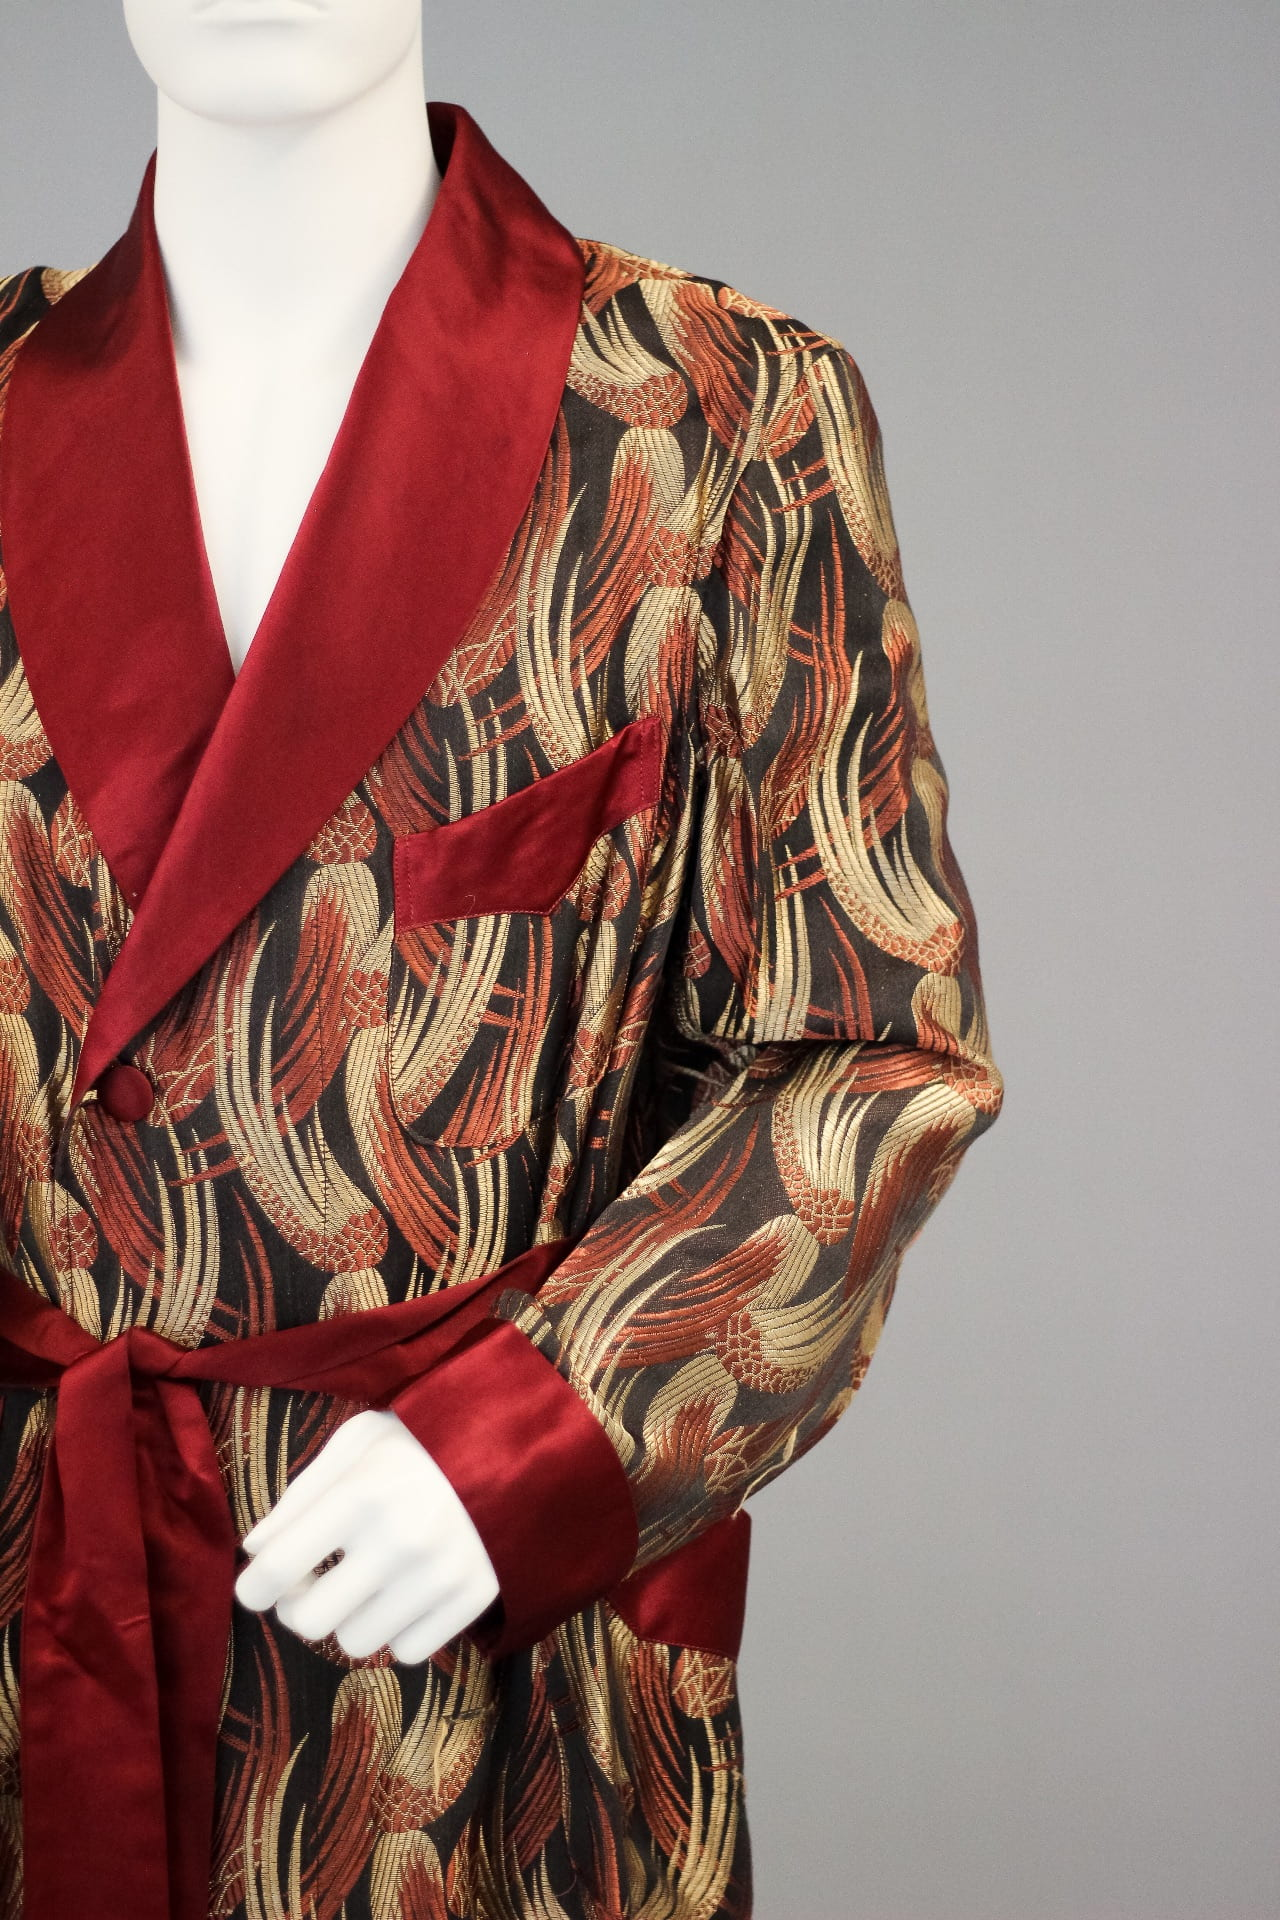 Man's house robe from the 1940s, which features a brocade wing design. Photo by Grace Anderson.